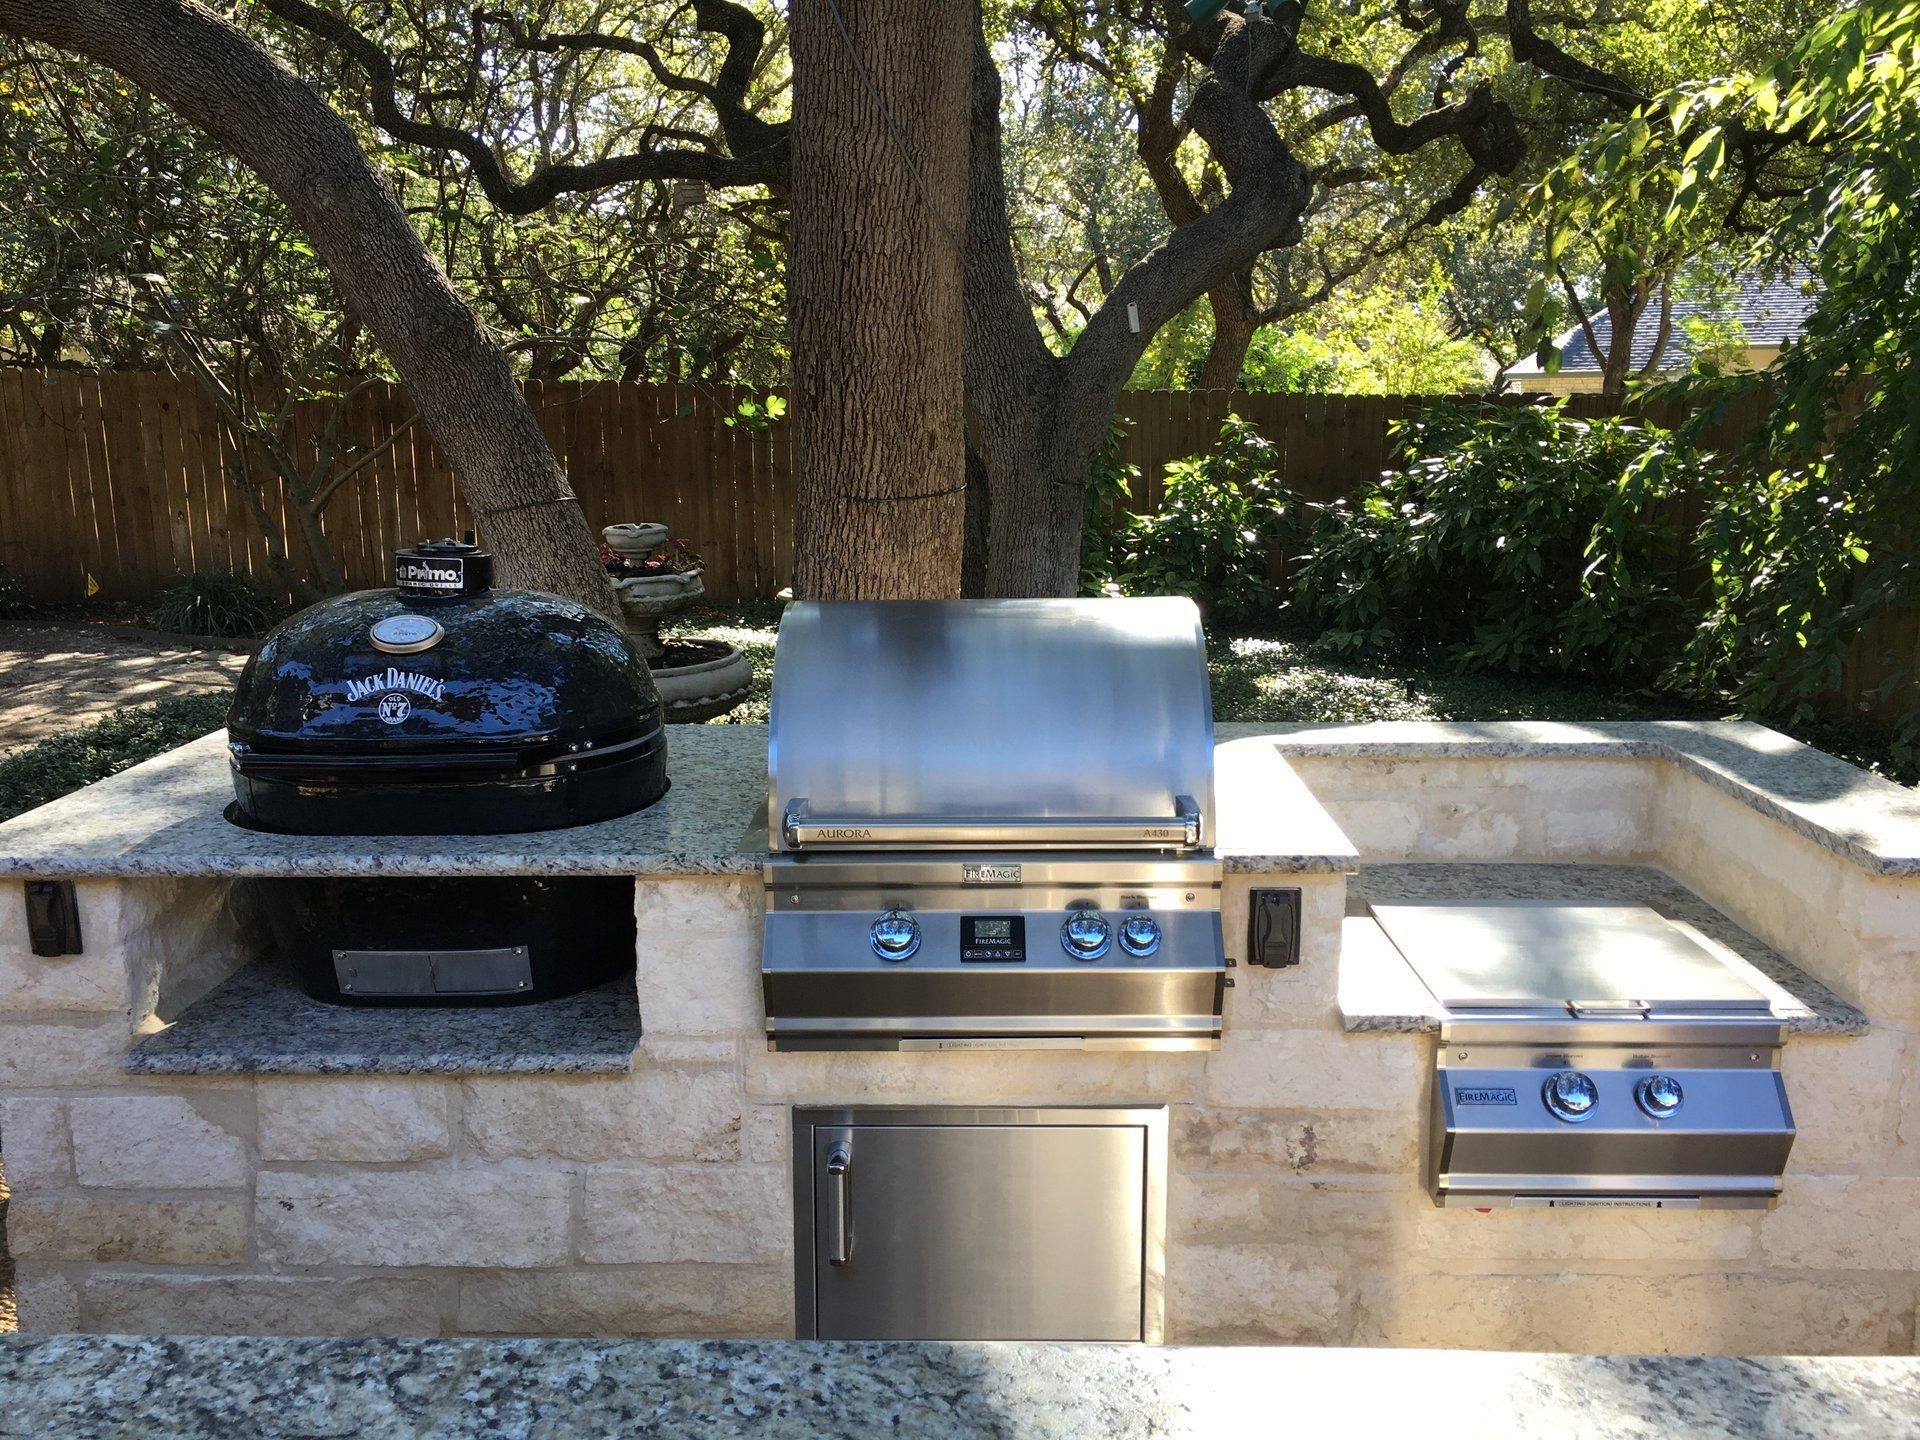 Barbecue Grills San Antonio Tx Outdoor Kitchens Fire Pits Inside